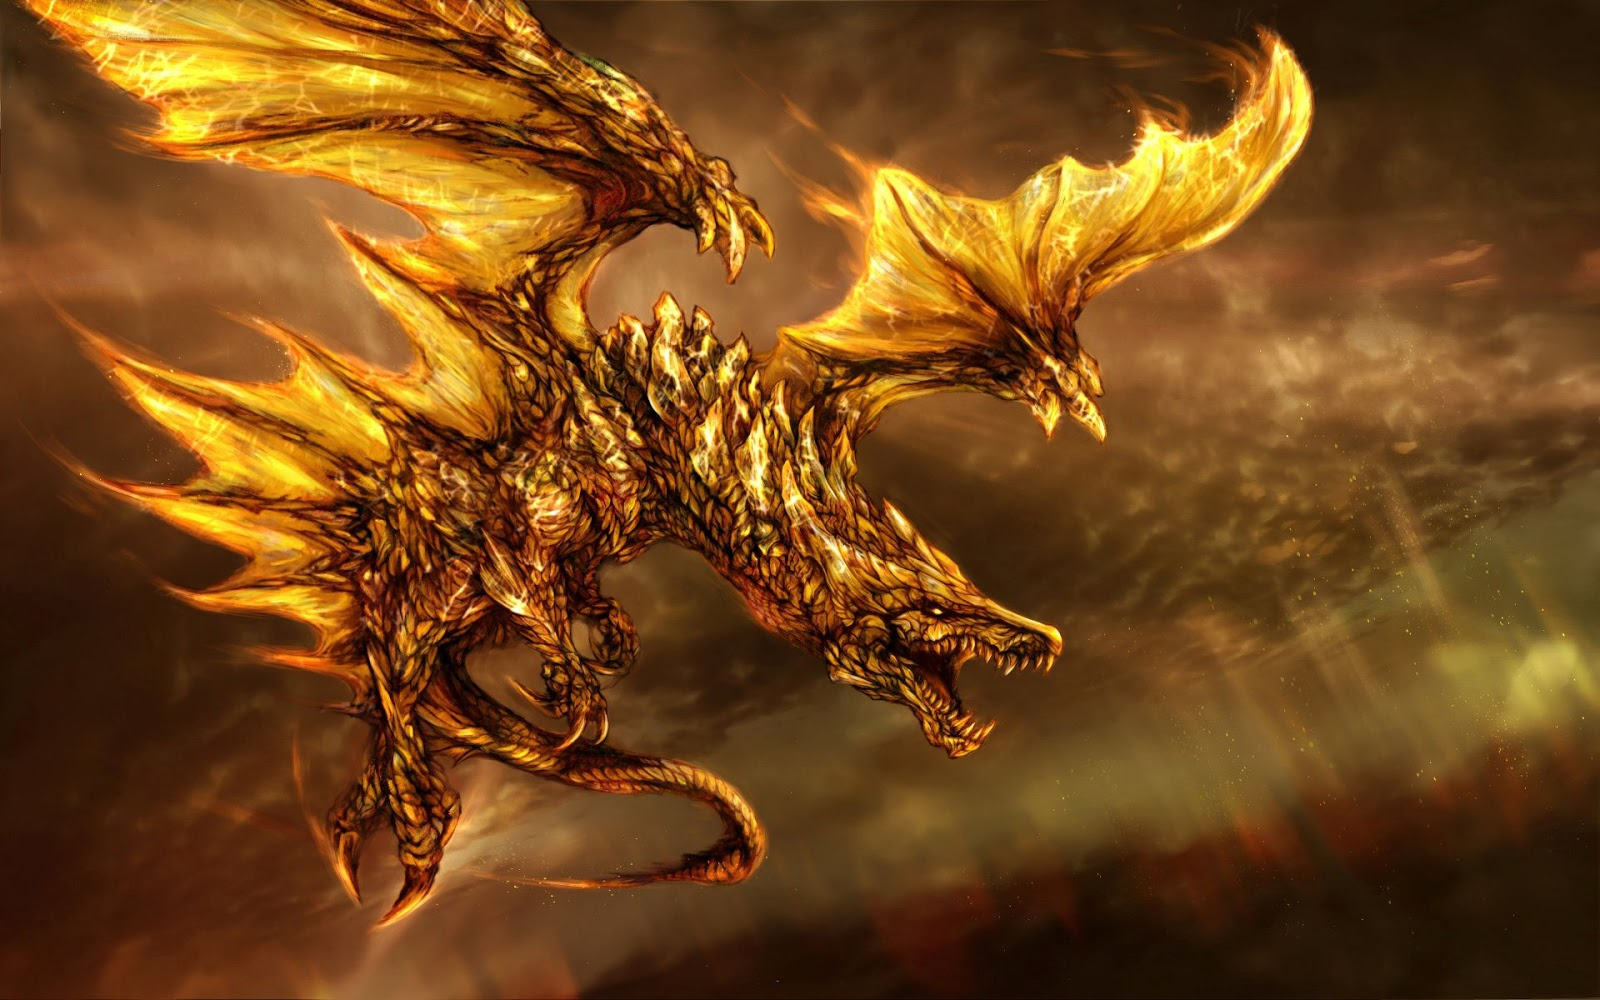 Dragon hd wallpapers - Dragon wallpaper 3d ...